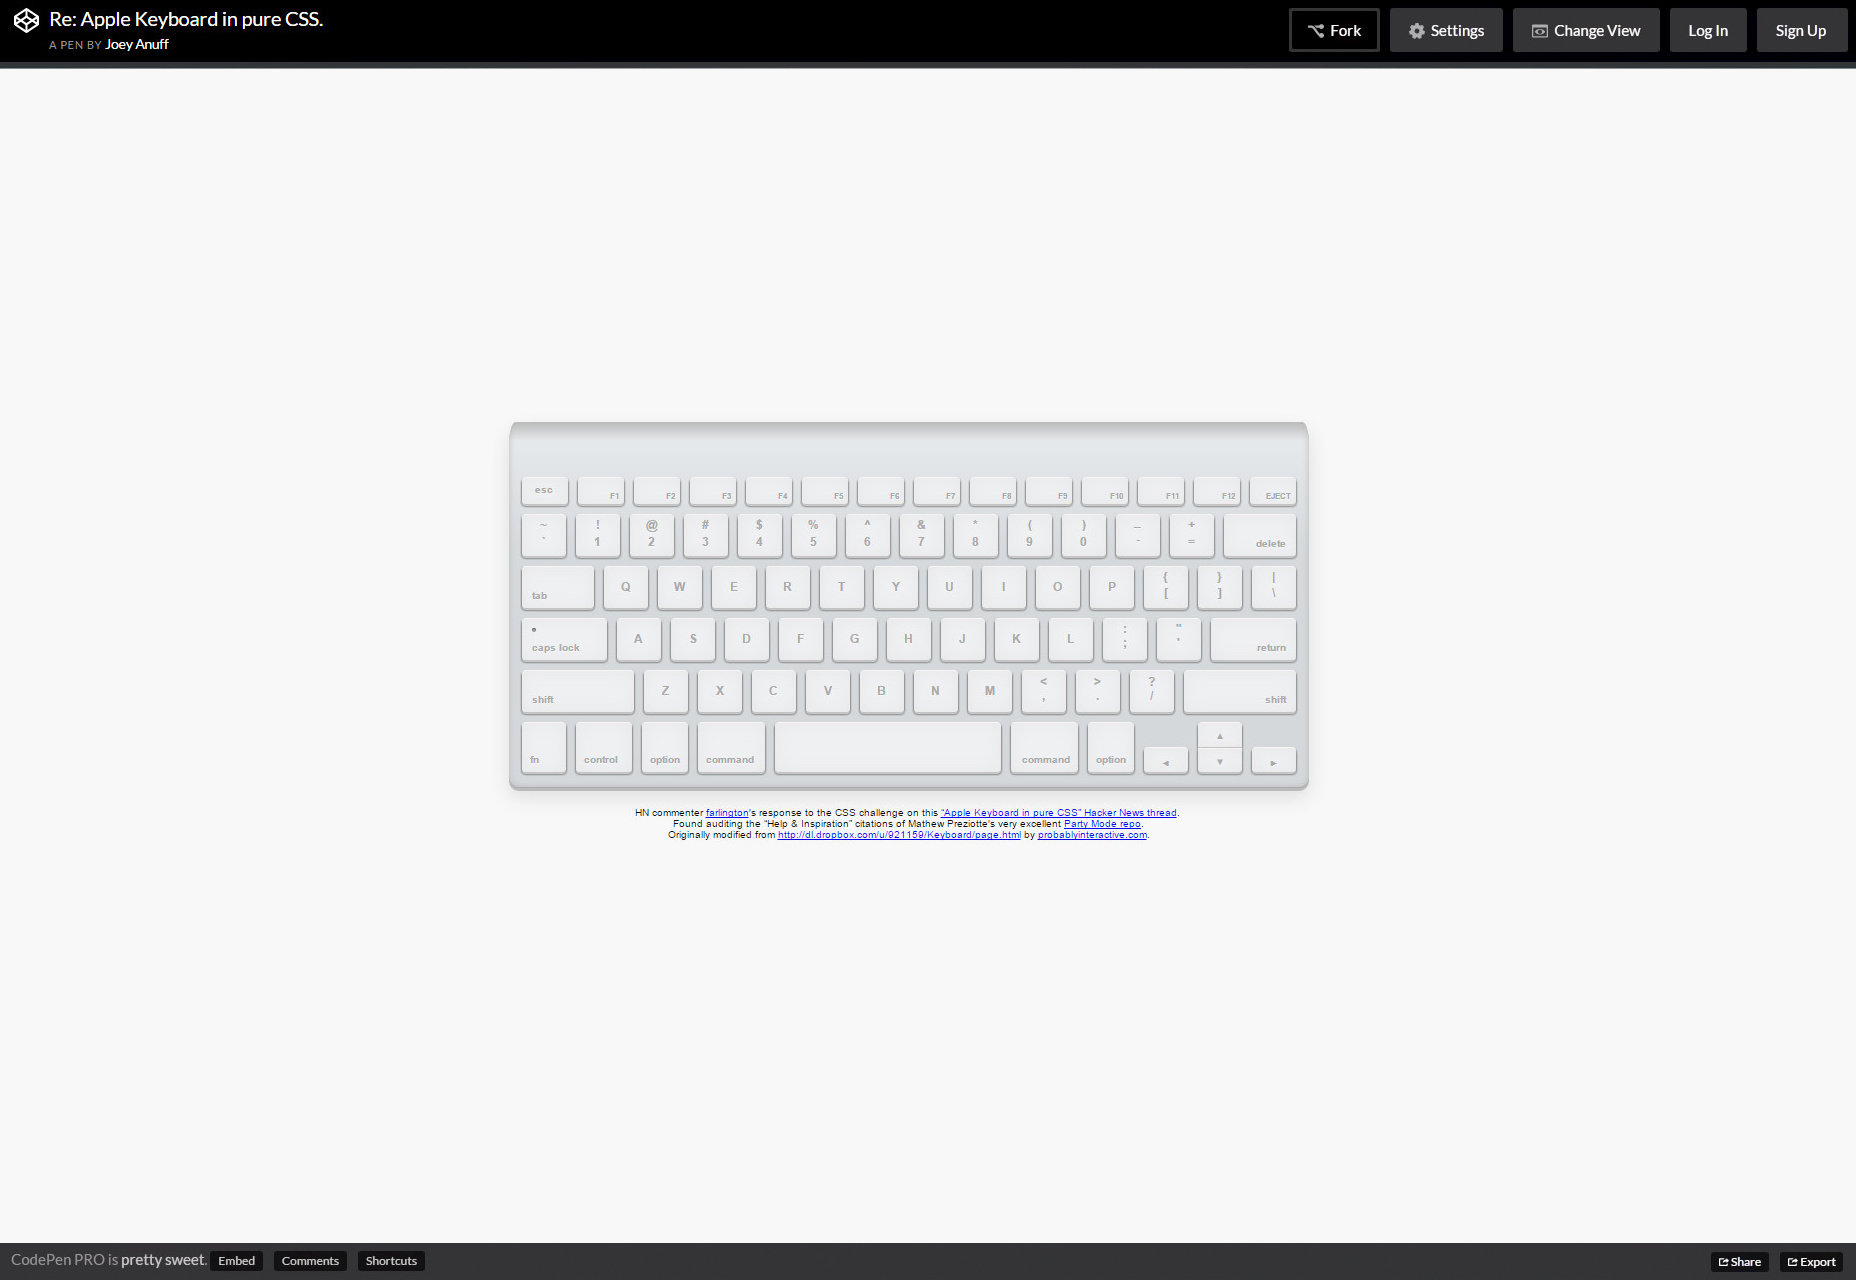 Pure CSS Apple Keyboard